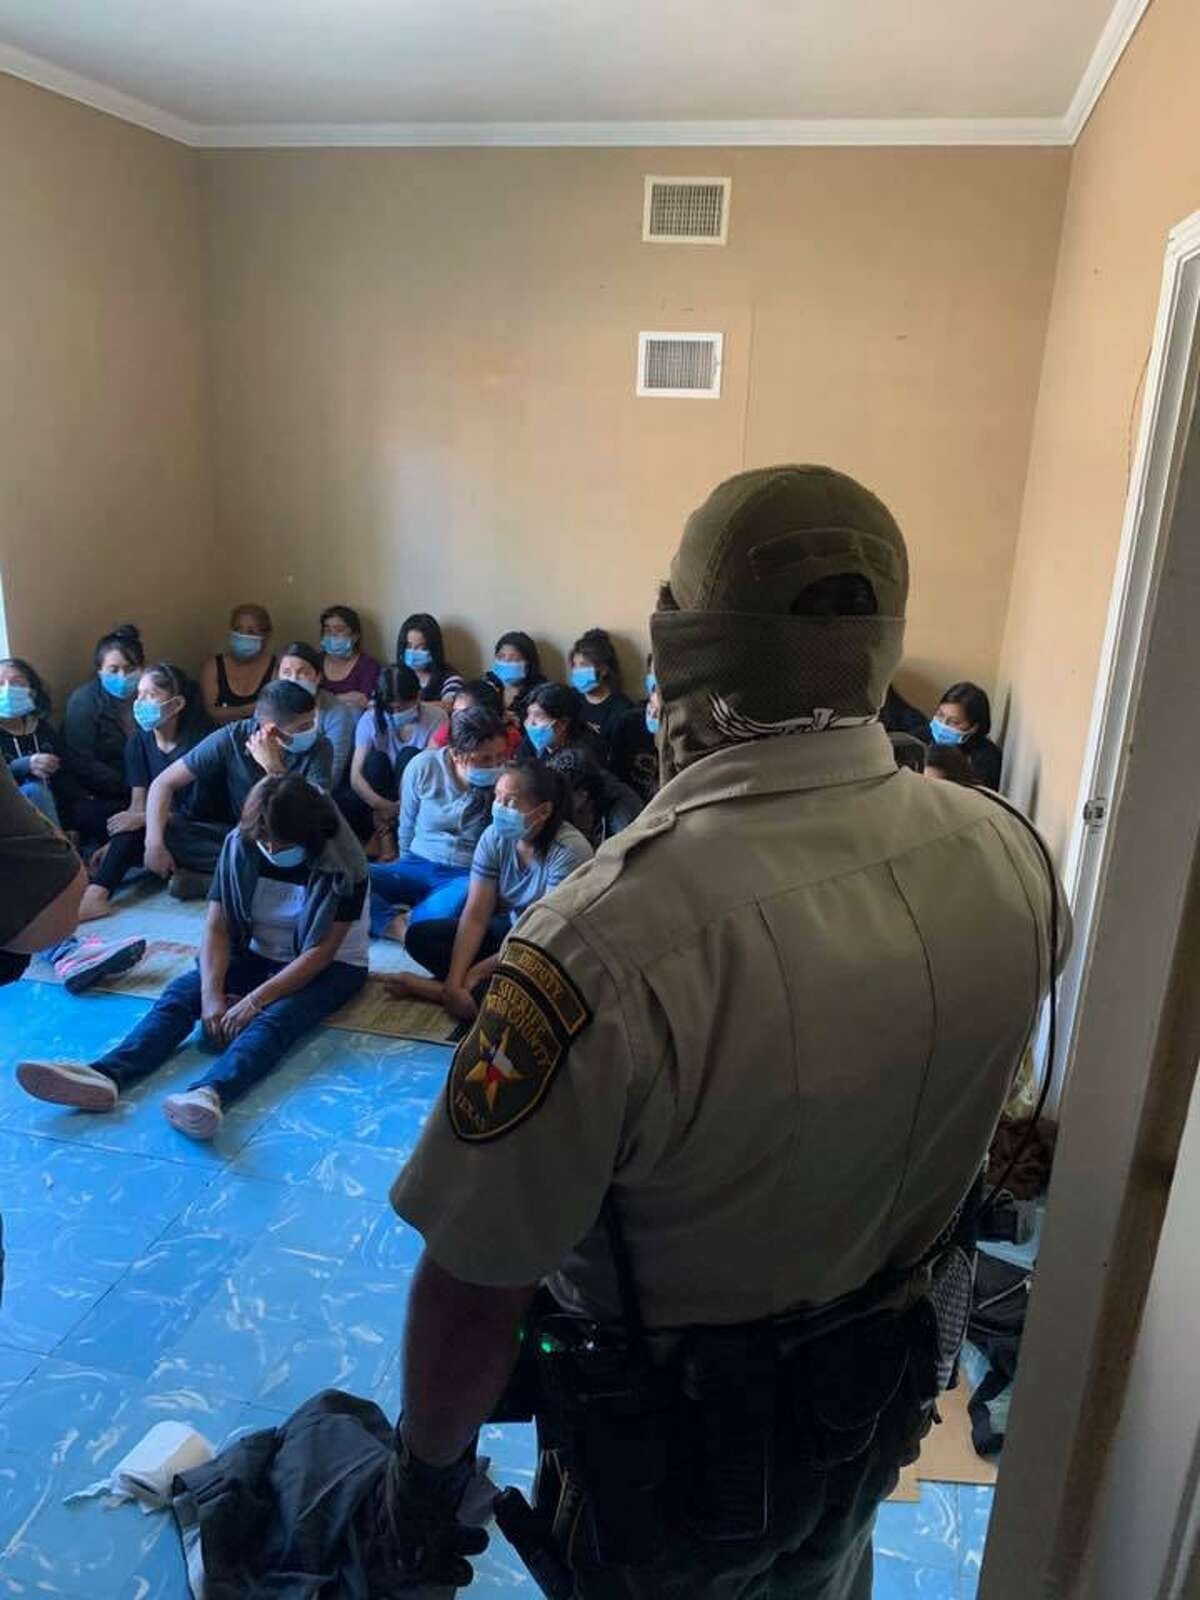 County and federal authorities discovered on Tuesday more than 120 people inside a stash house located in the Las Lomas neighborhood in central Laredo.